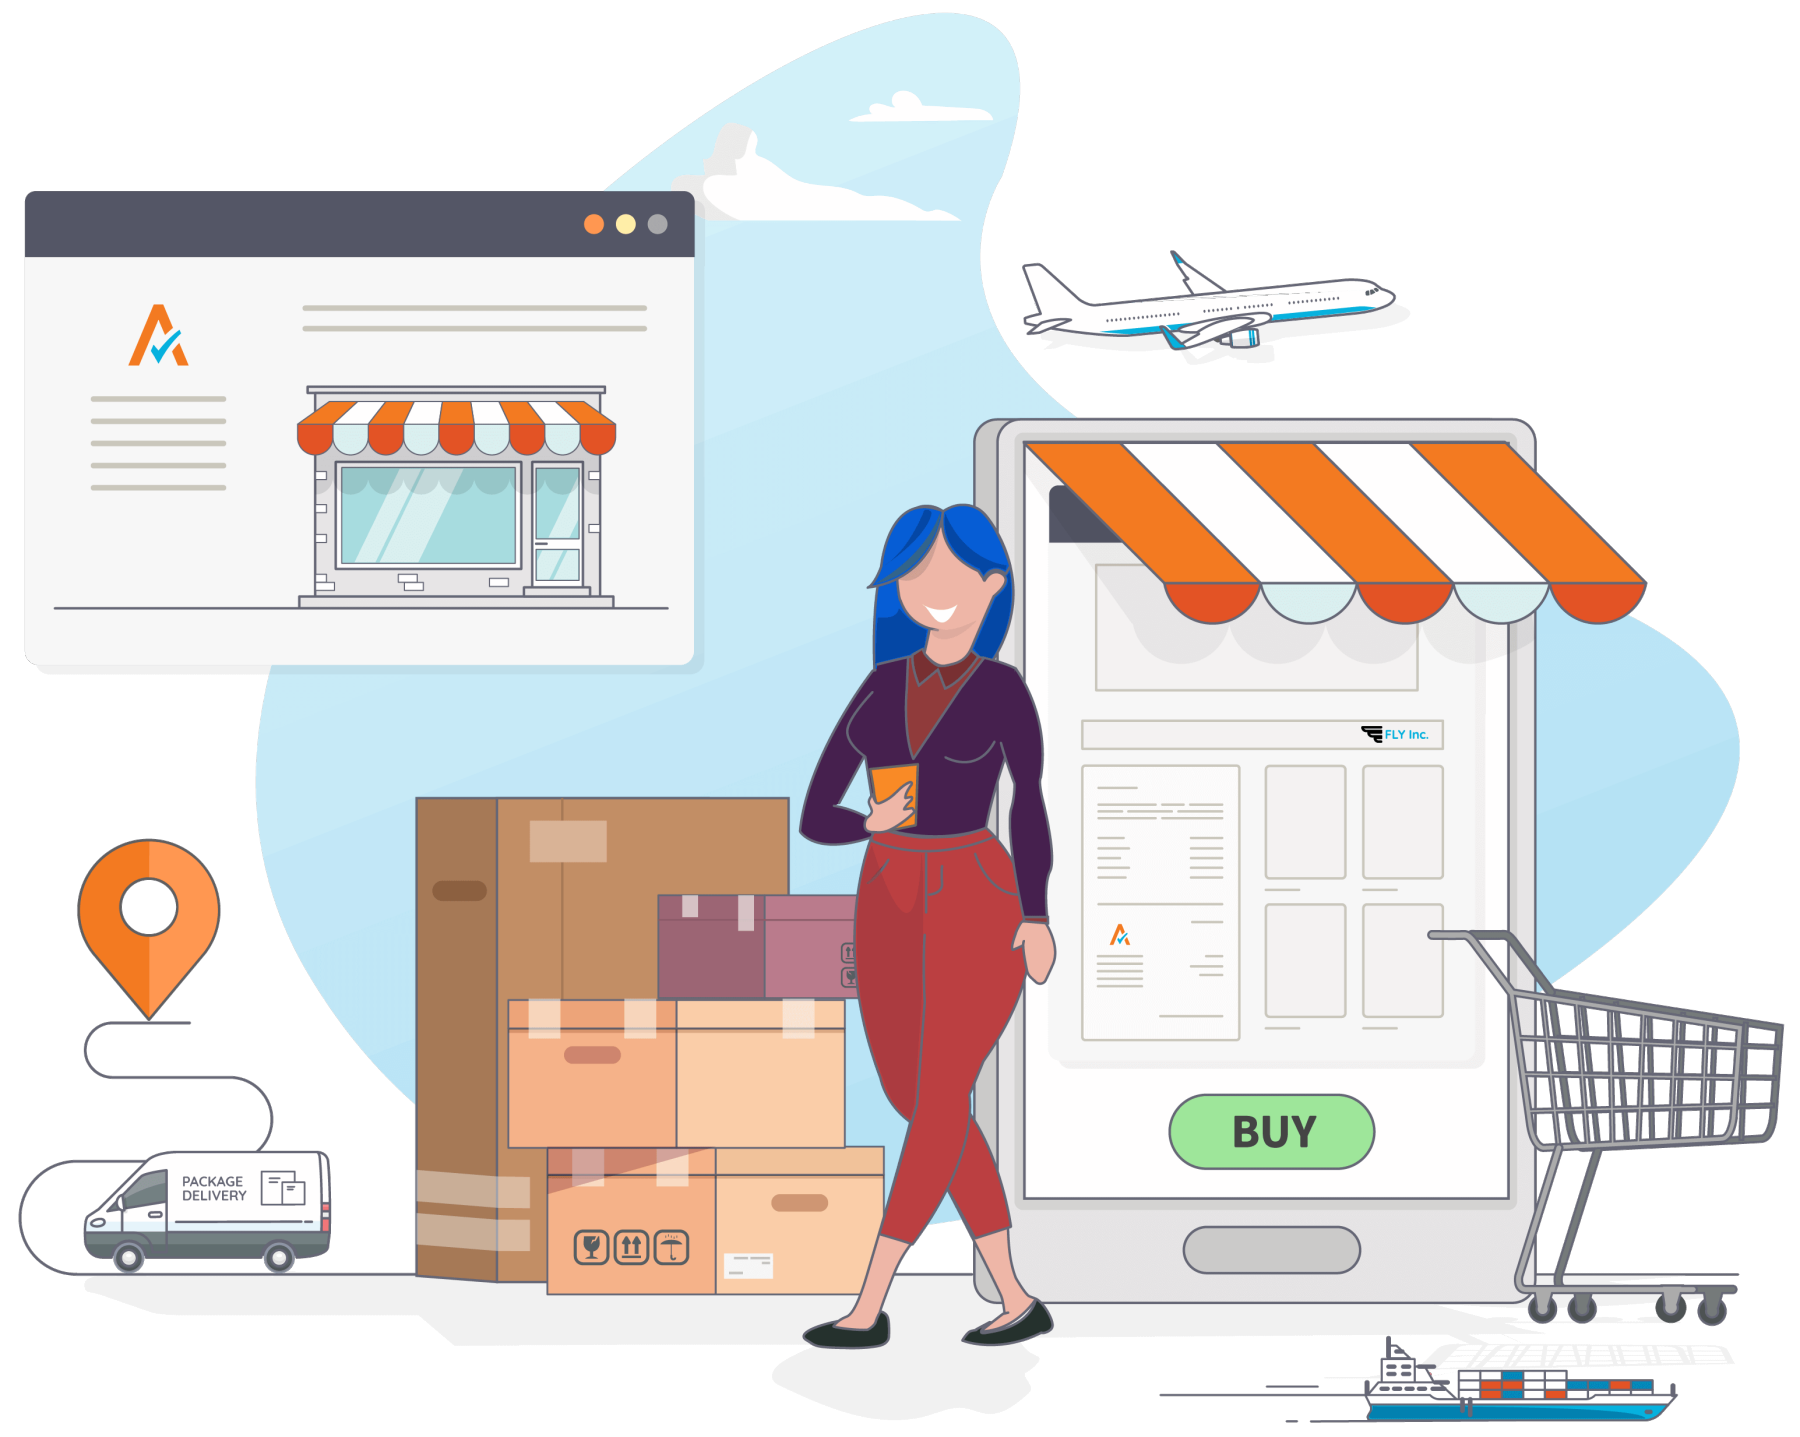 Ecommerce Shopping Illustration